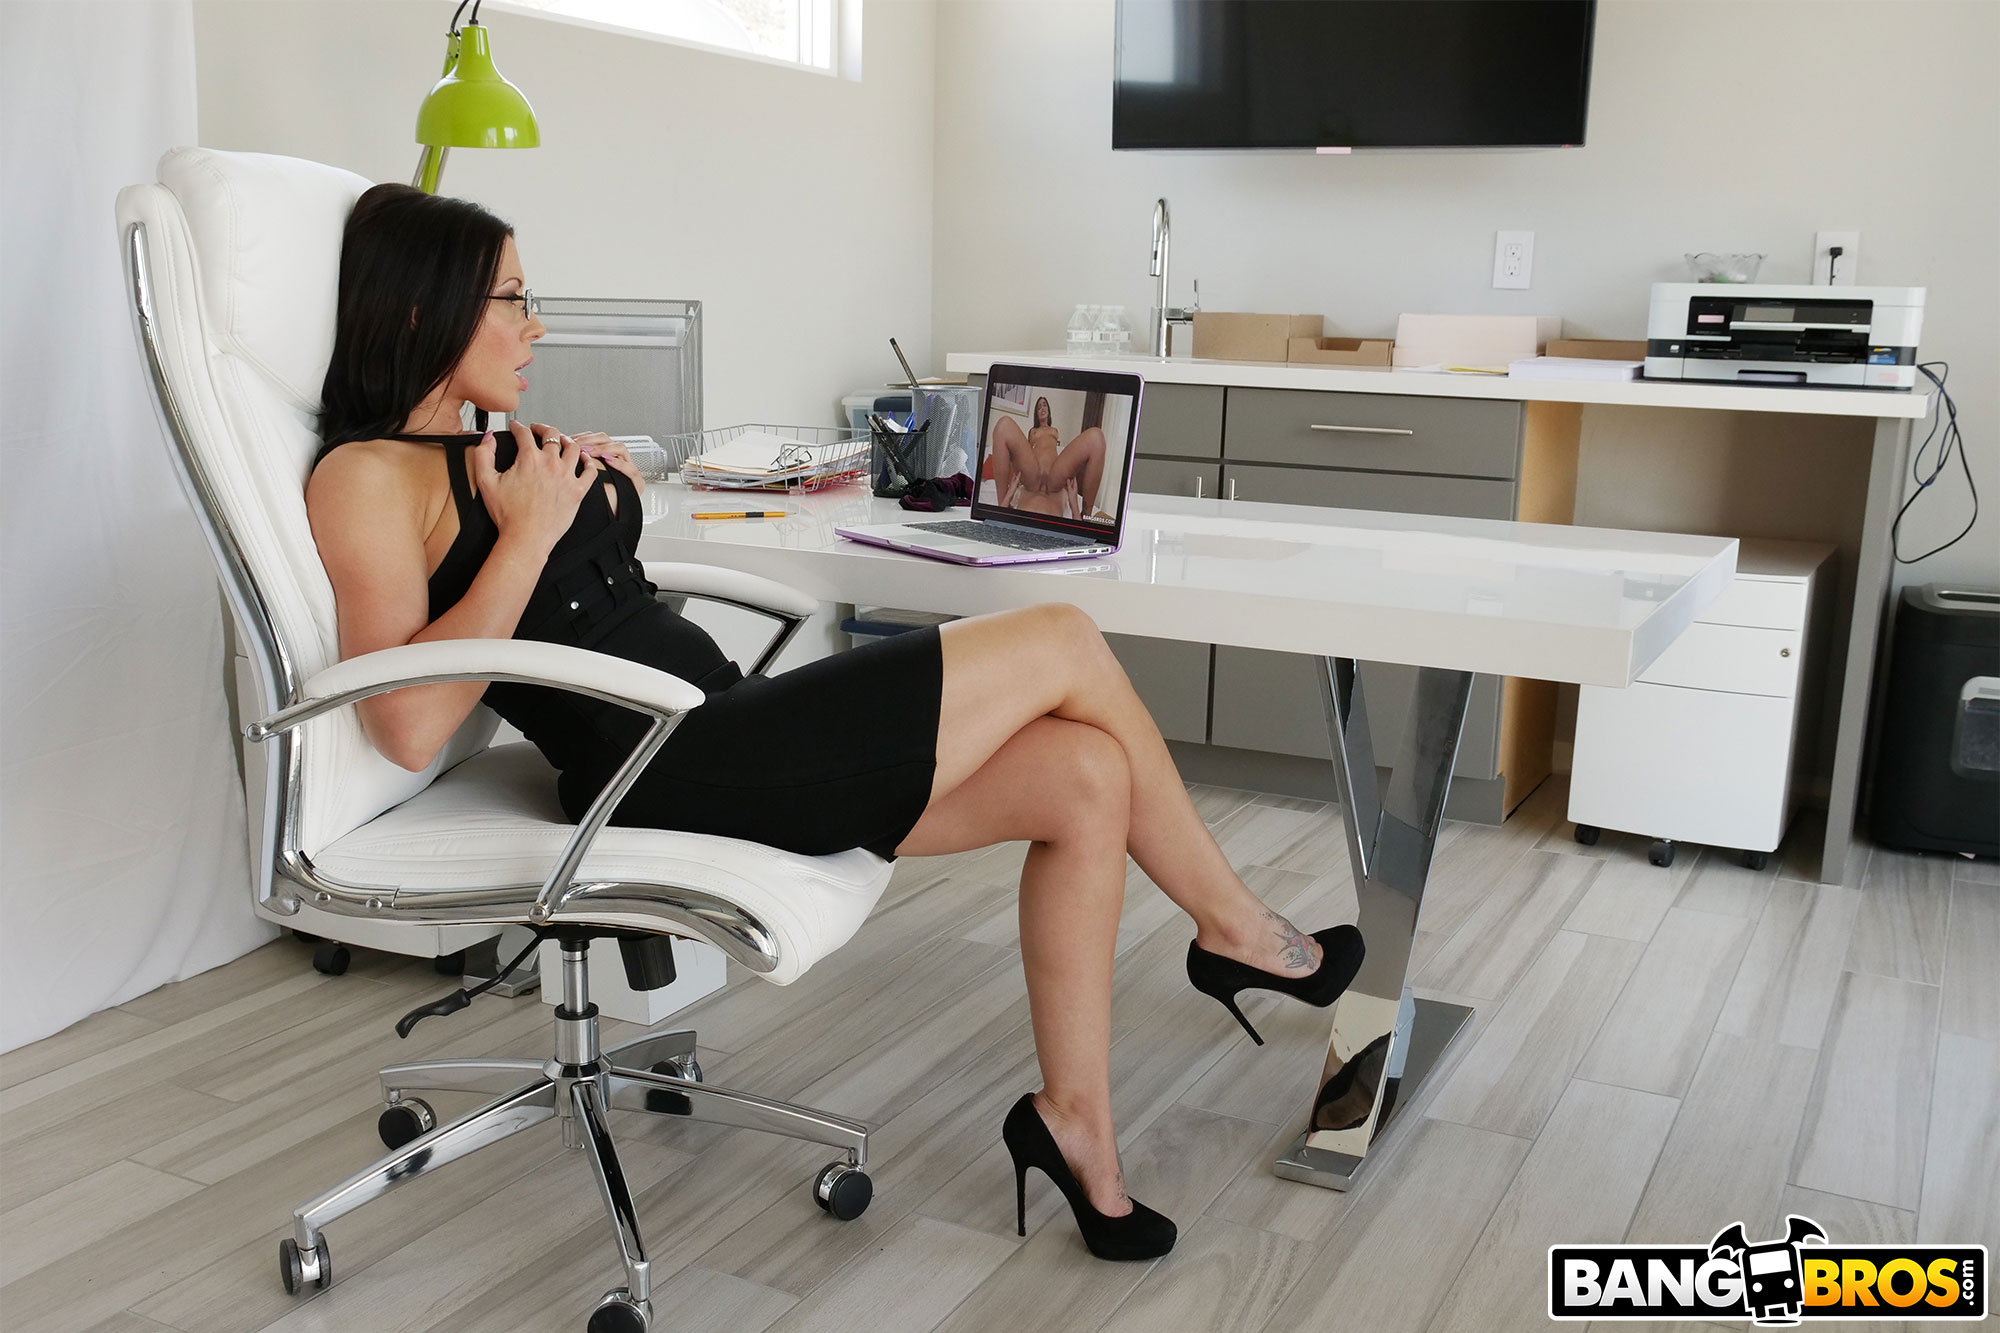 Bangbros 'Rachel Starr Gets Railed by Her Boss' starring Rachel Starr (photo 46)